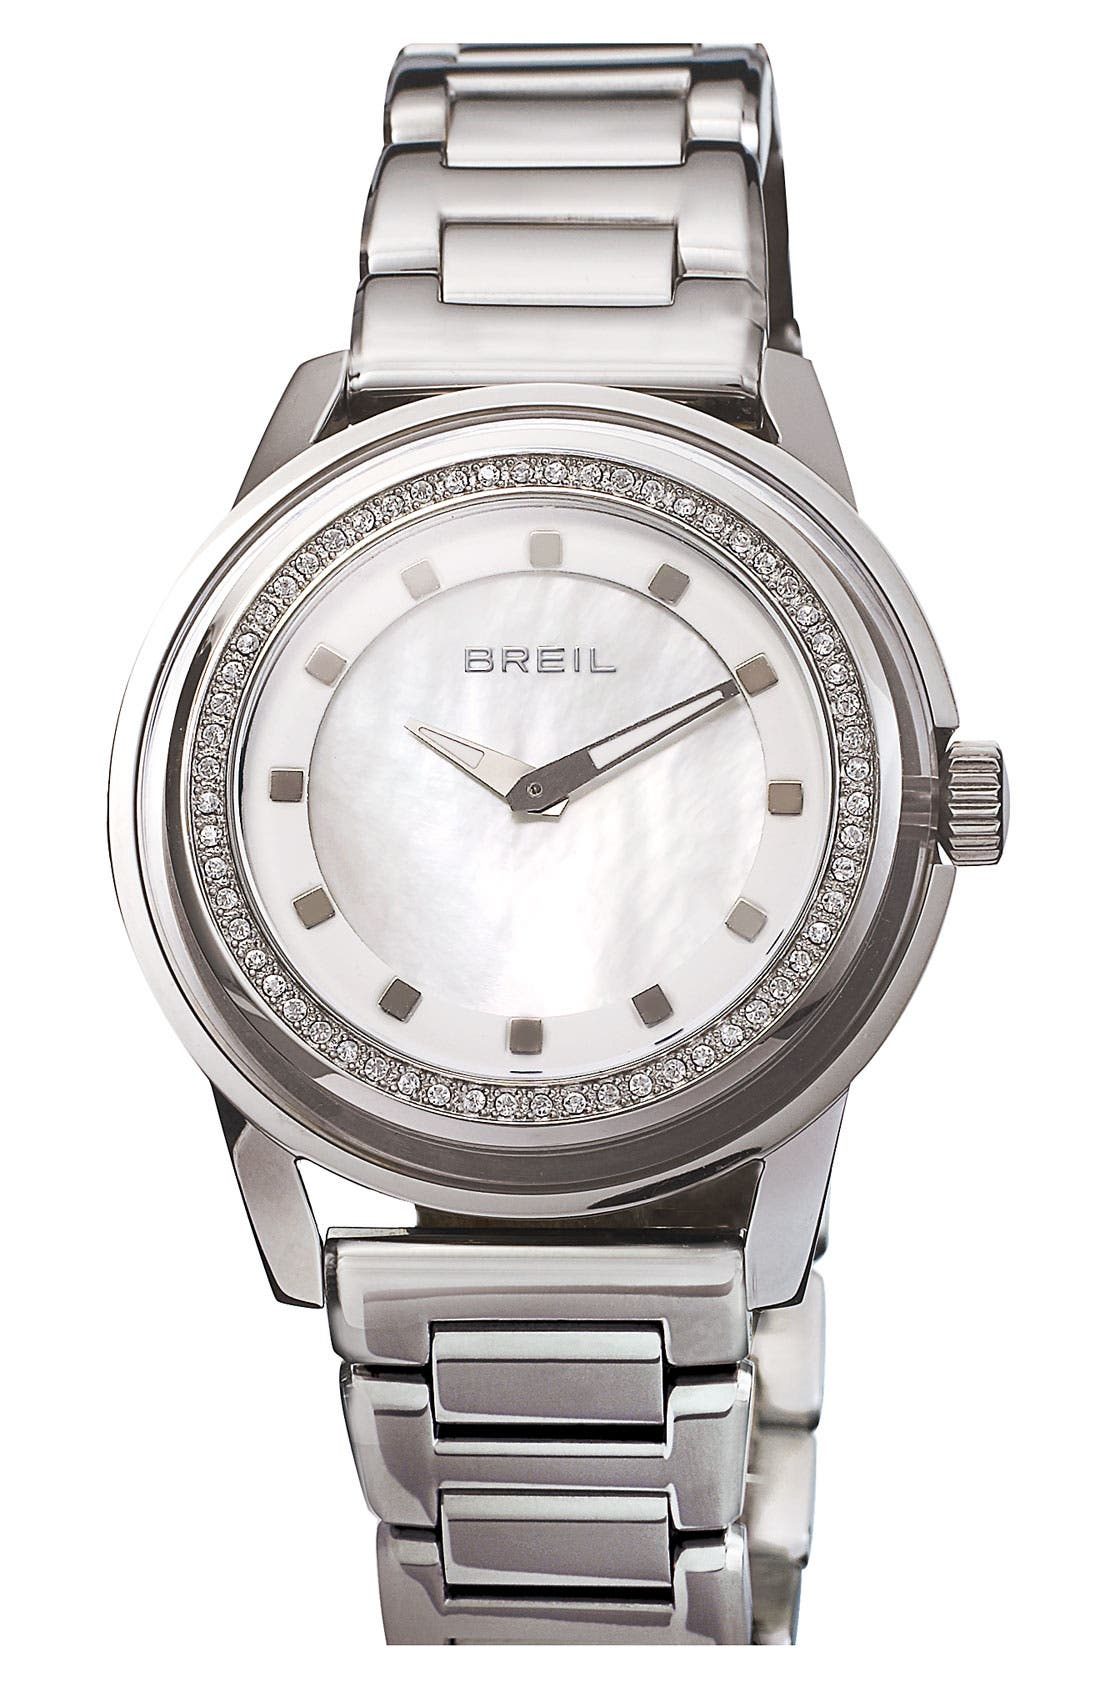 Main Image - Breil 'Orchestra' Crystal Bezel & Index Bracelet Watch, 40mm